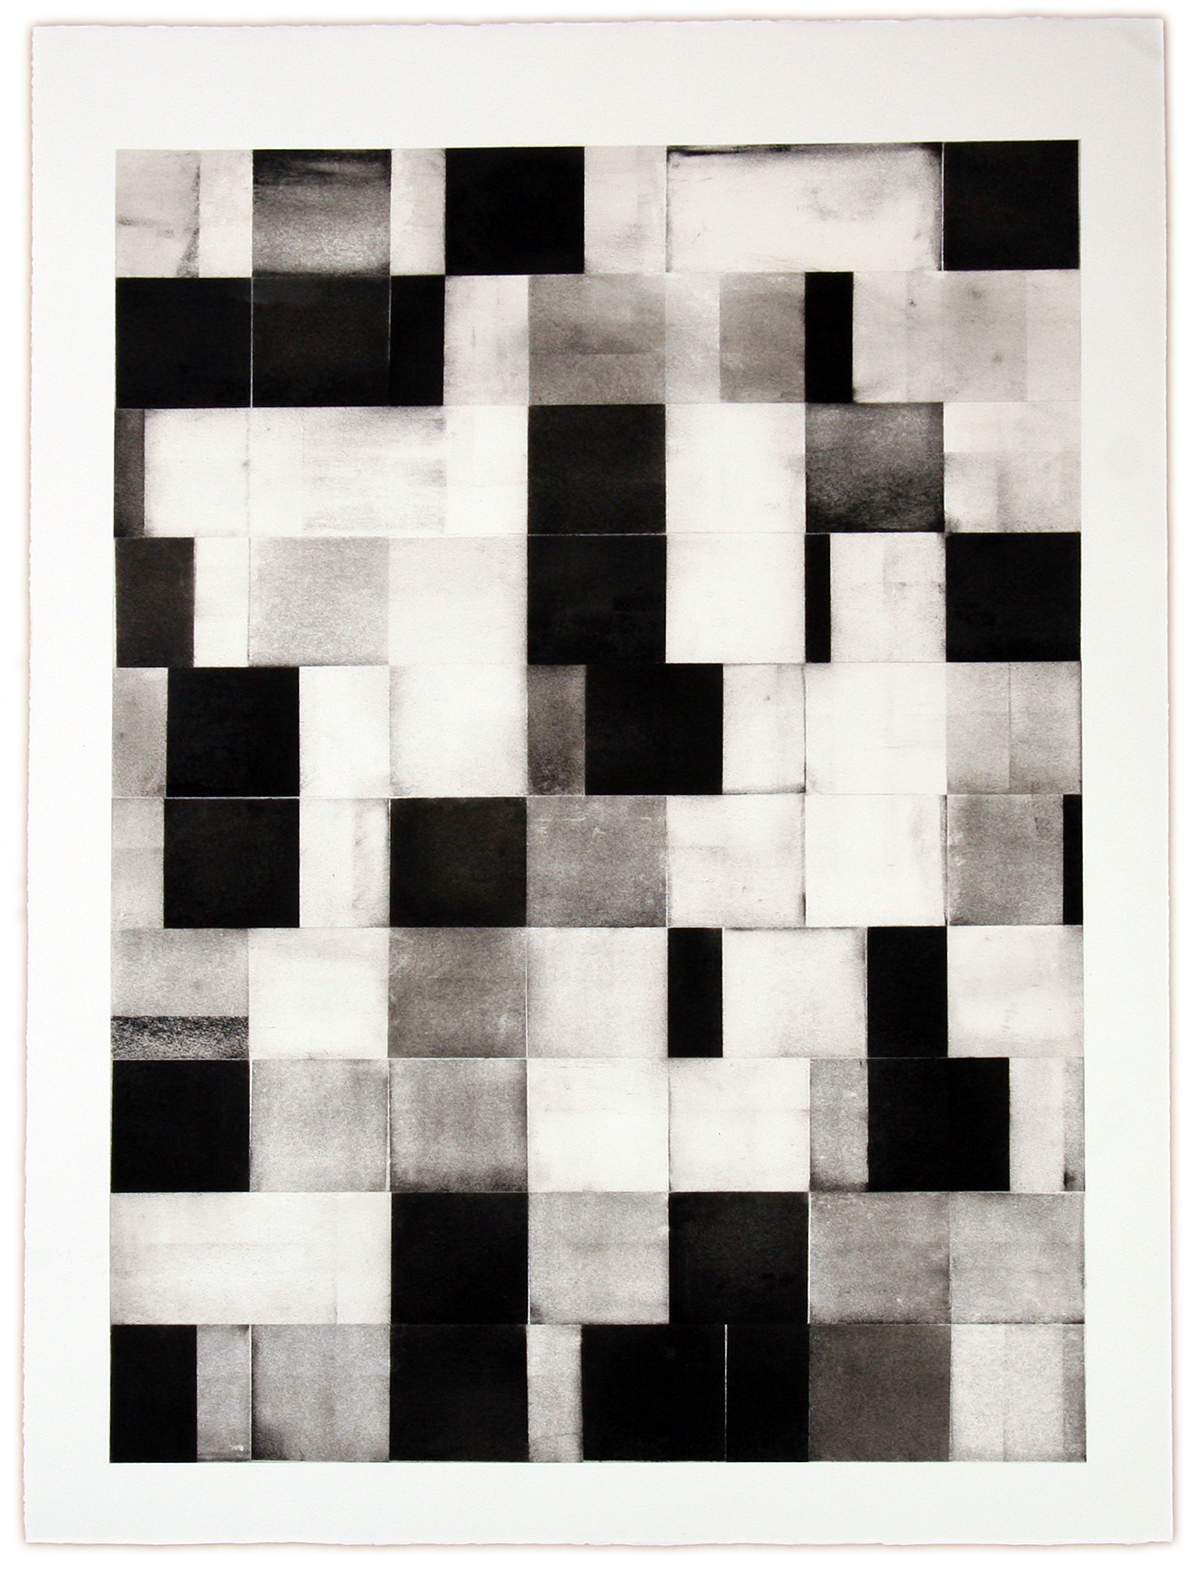 DANIEL BRICE, Untitled, 2015, charcoal on paper, 40 x 30 inches